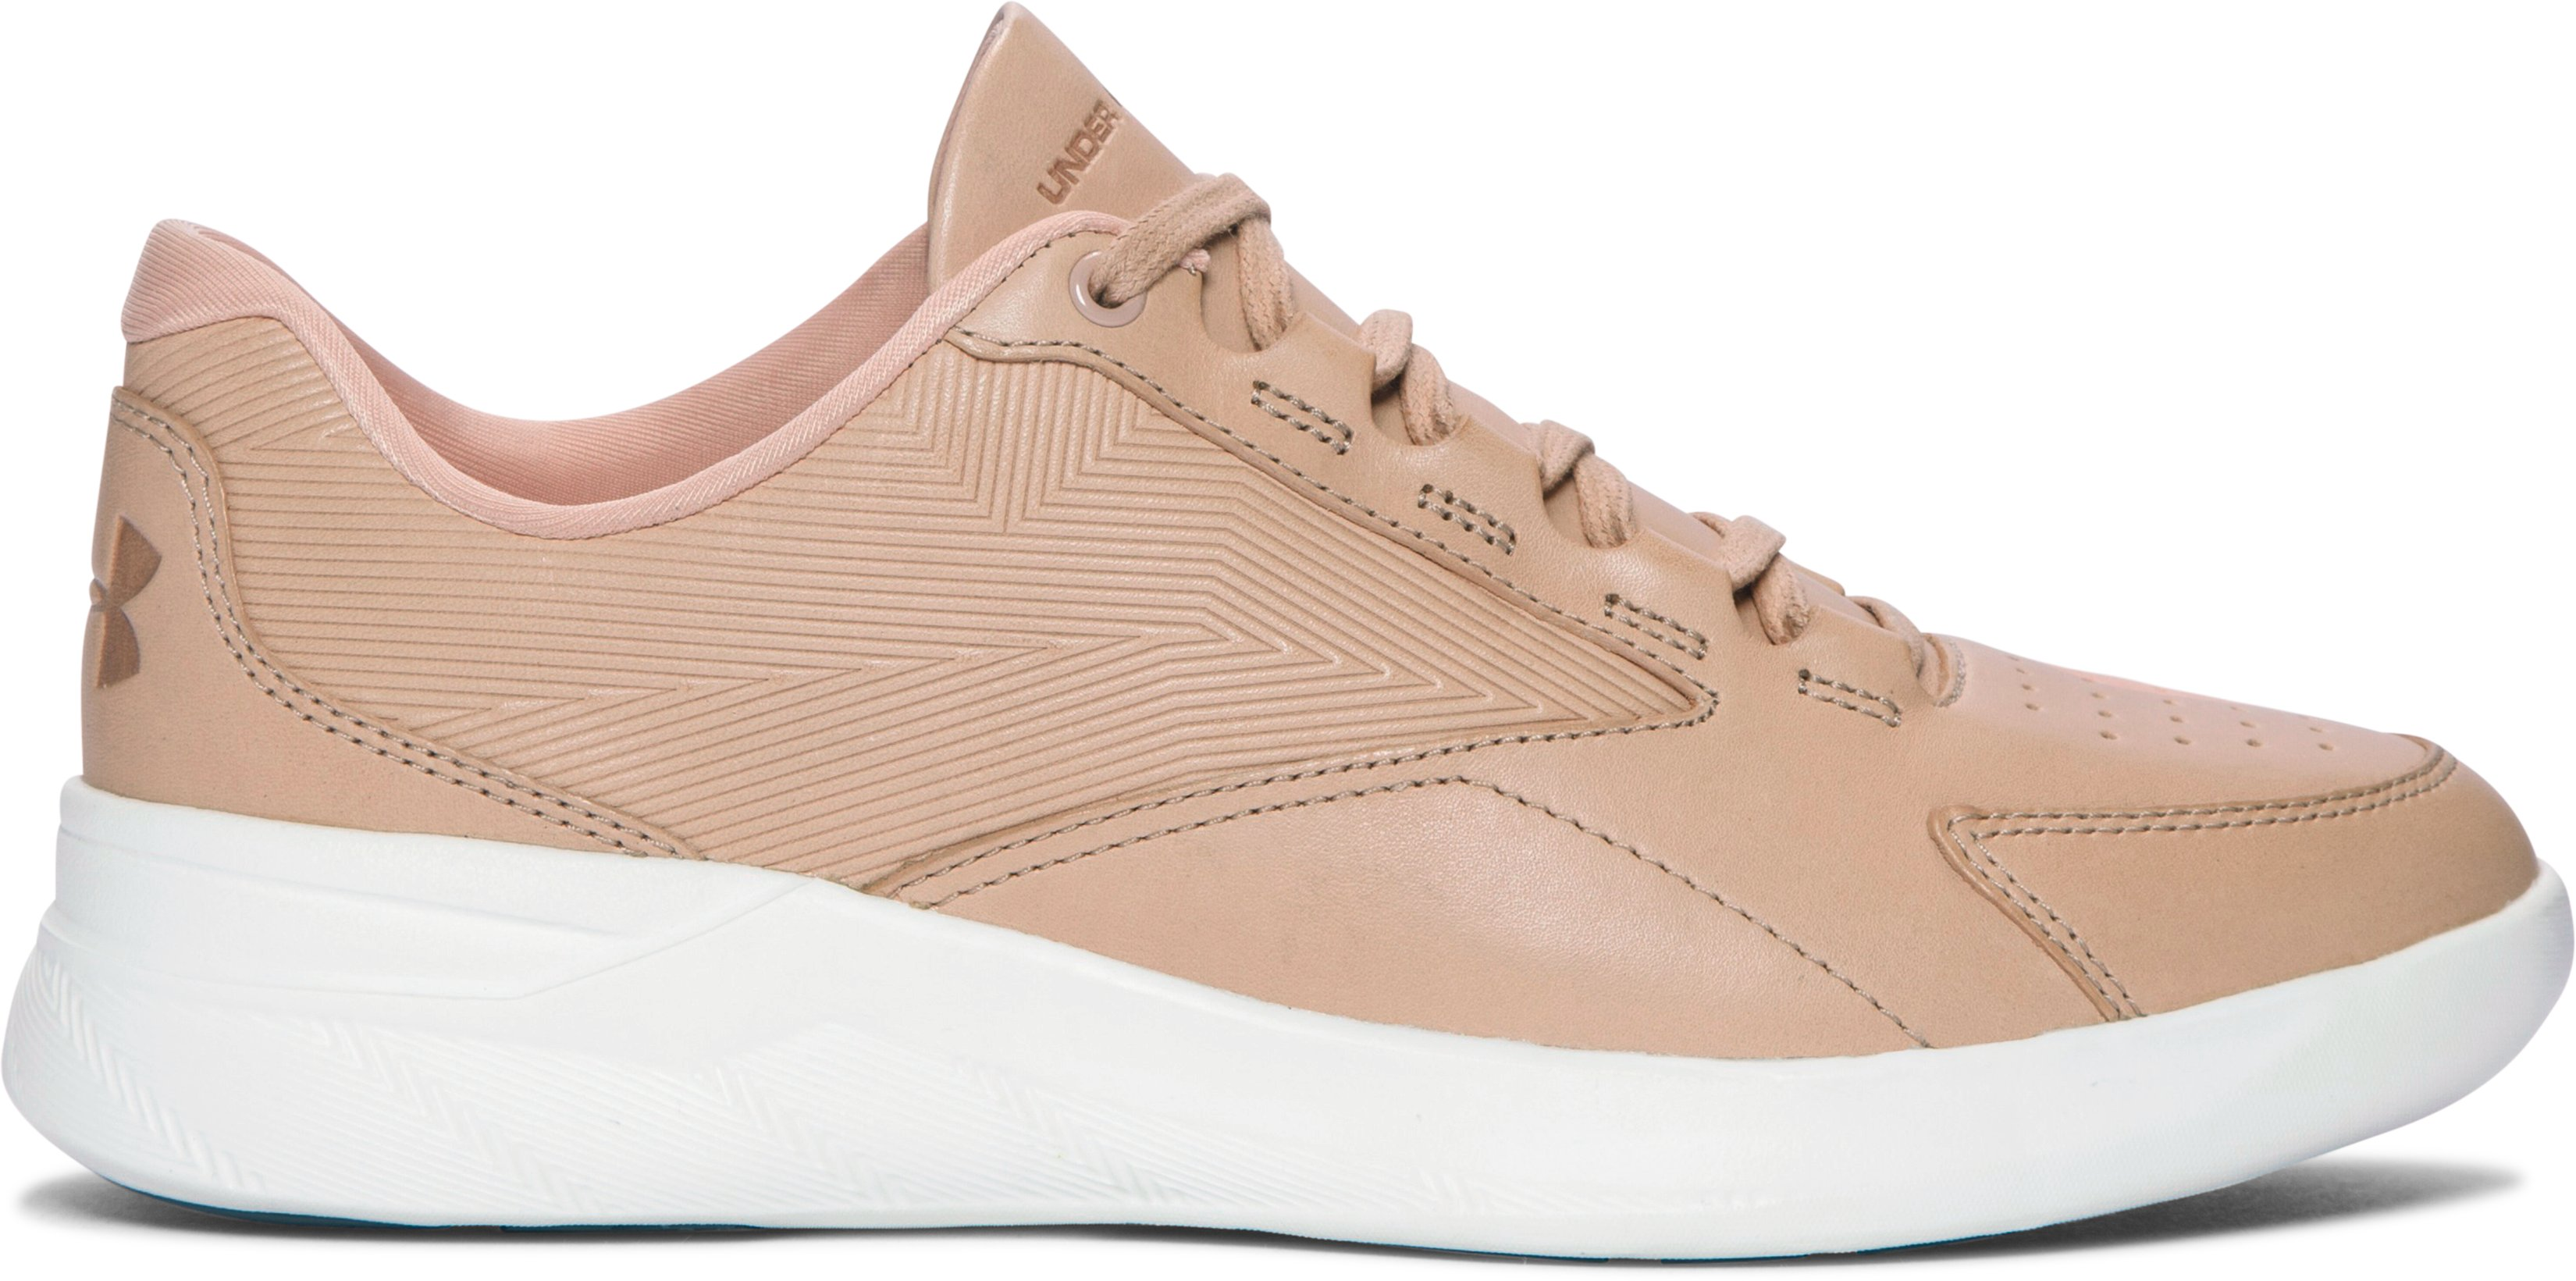 Women's UA Charged Pivot Low Lifestyle Shoes, CORAL SANDS, zoomed image